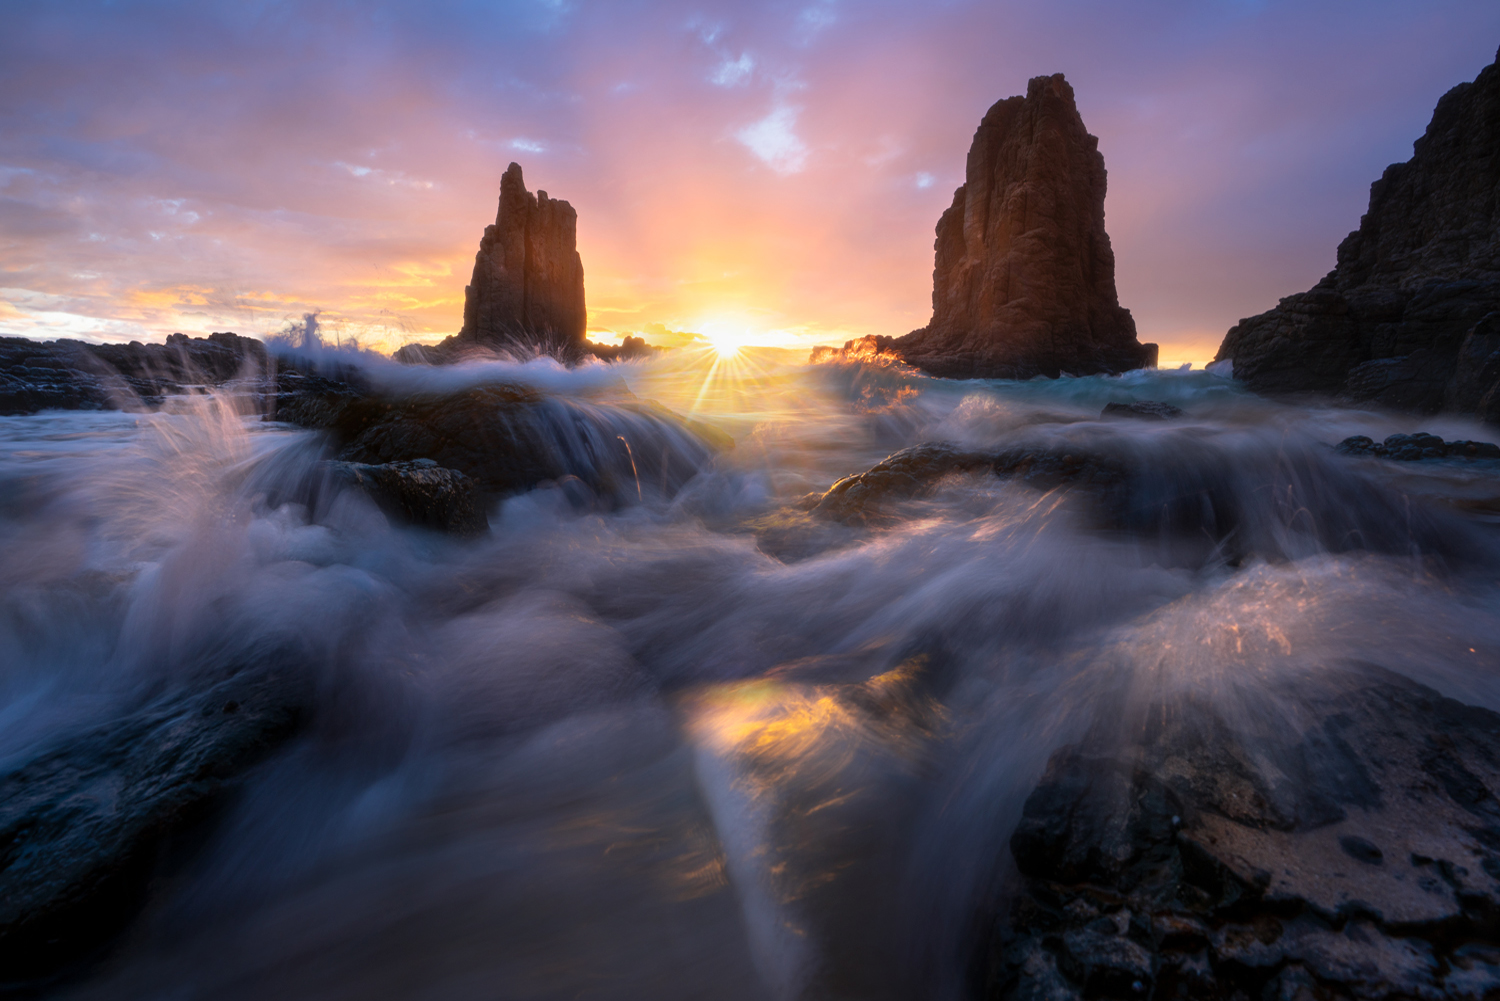 Kiama-Cathedral-Rocks-WilliamPatino